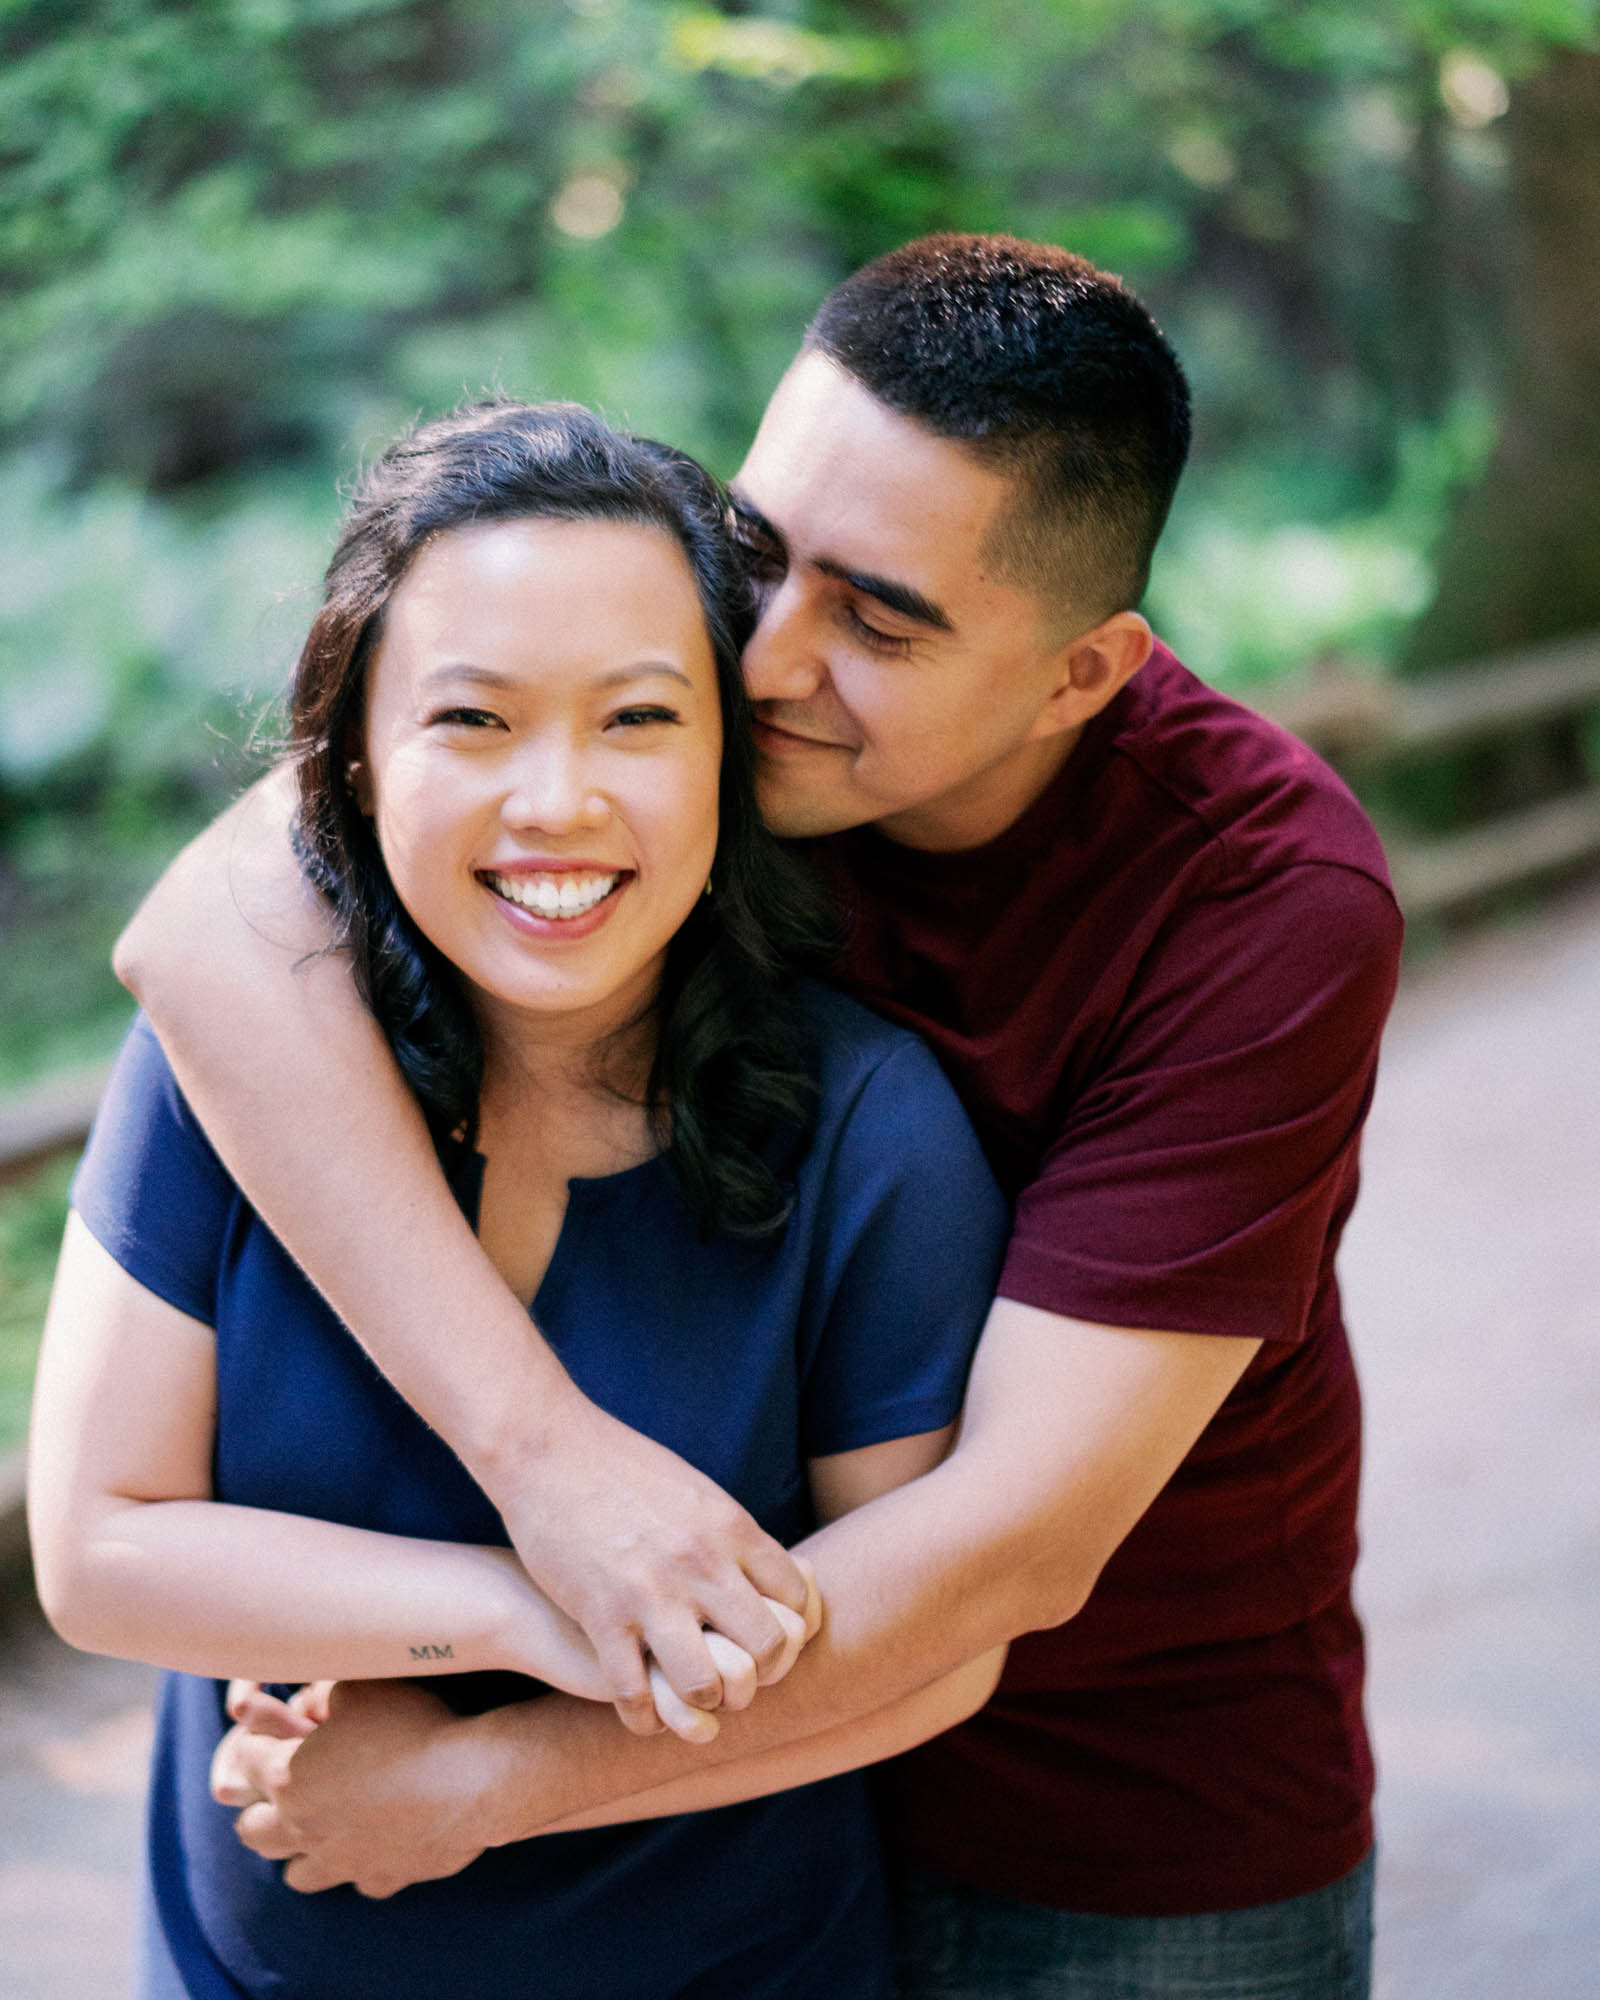 Muir Woods Beach Engagement Session 2.jpg